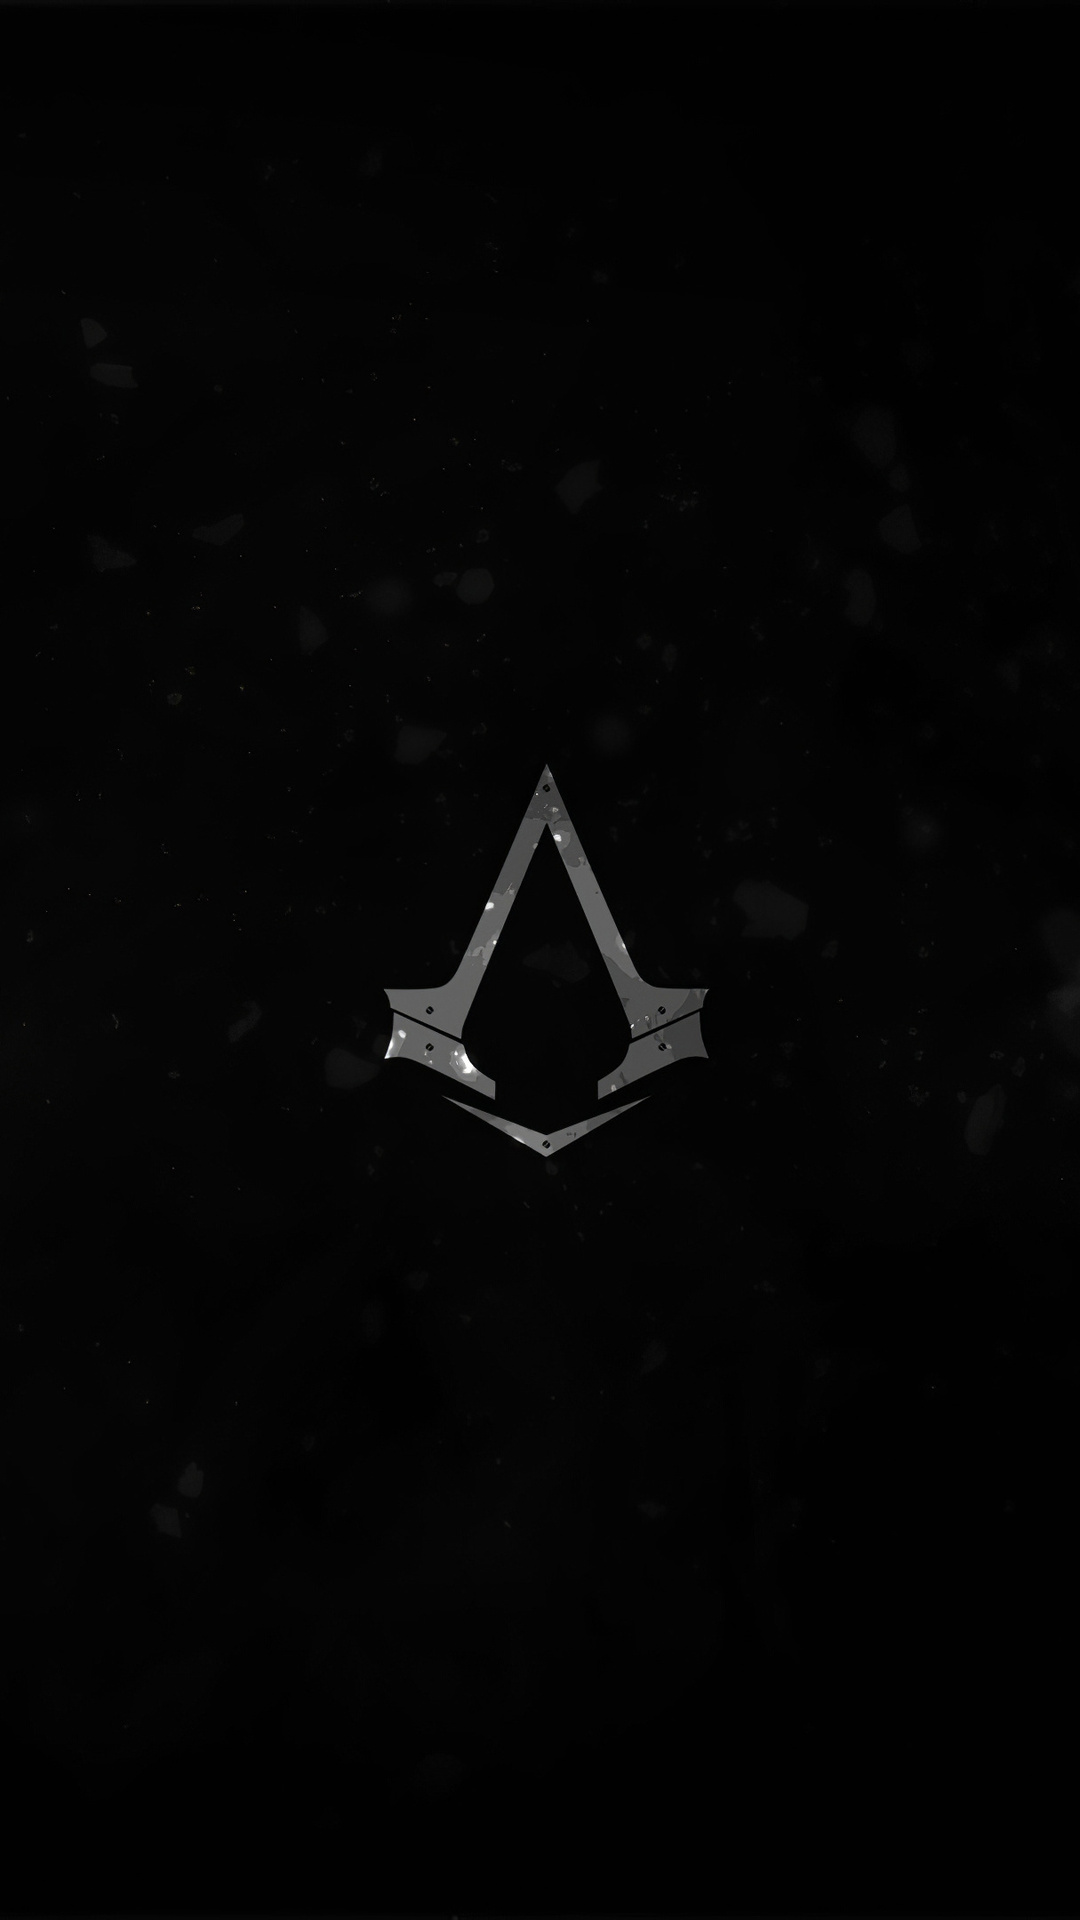 1080x1920 Assassins Creed Syndicate Logo Dark 4k Iphone 7 6s 6 Plus Pixel Xl One Plus 3 3t 5 Hd 4k Wallpapers Images Backgrounds Photos And Pictures